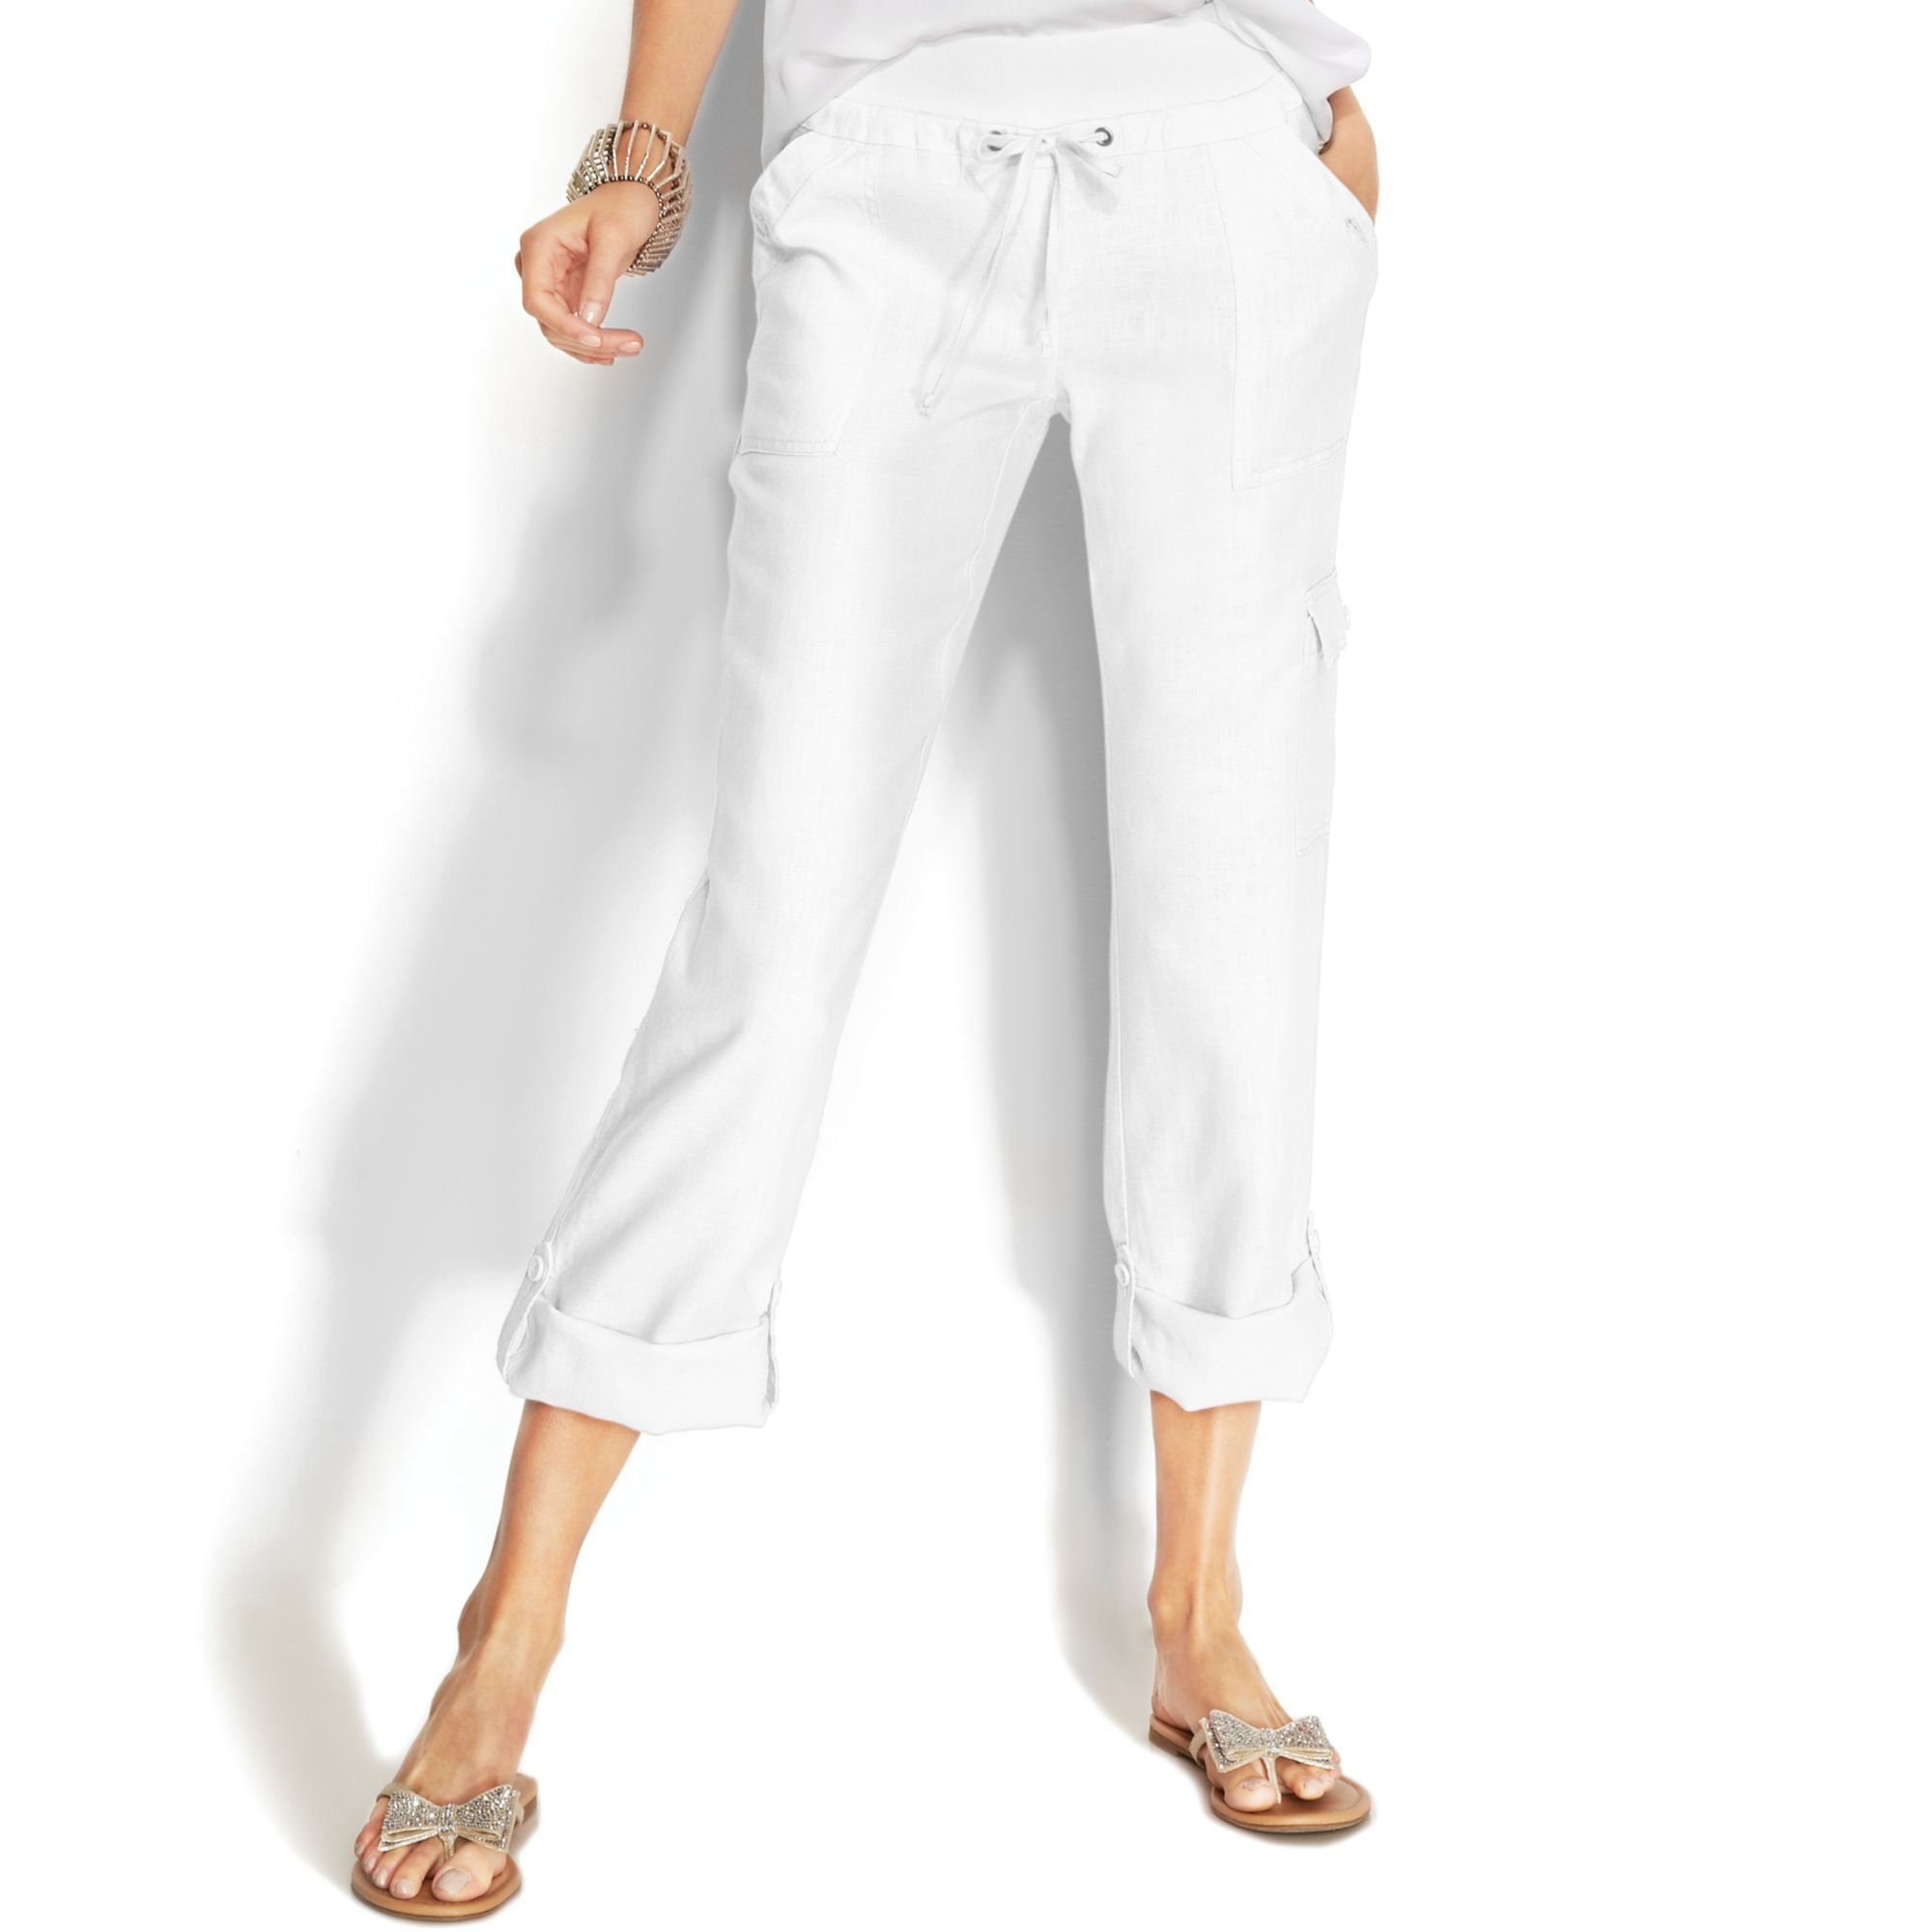 Linen Pants For Women. When the warm days of summer hit, you need clothing that will keep you cool and stylish at the same time. Linen pants for women combine the comfort of breathable fabric with a timeless and classic look.